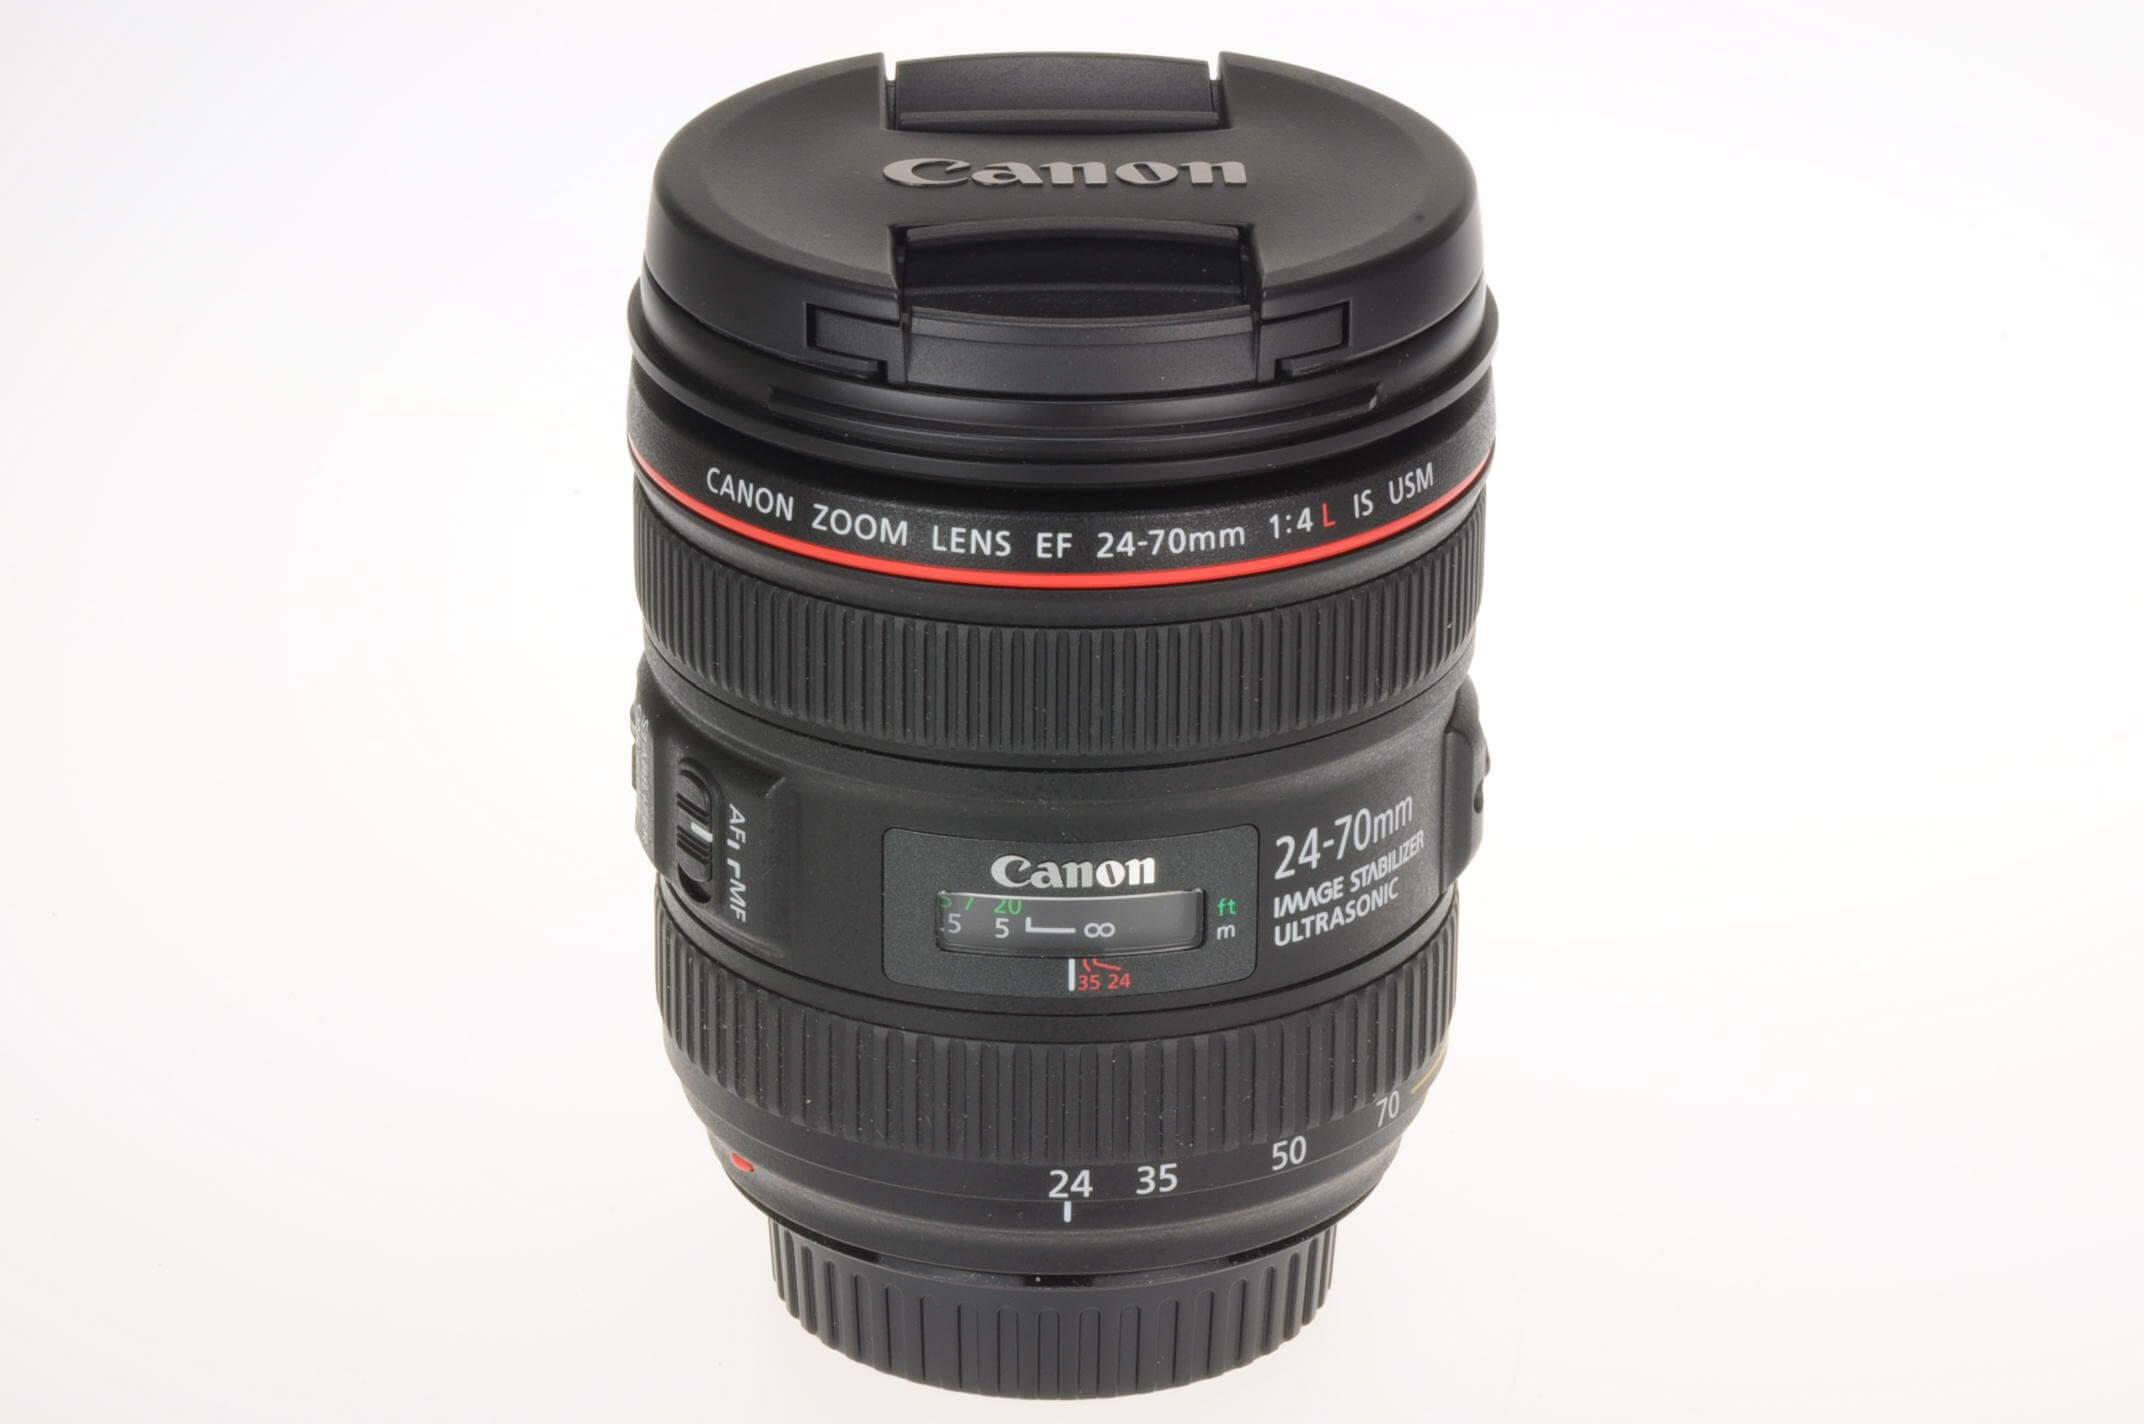 Canon 24-70mm f4 L IS USM, Mint and boxed, bought brand new 25th July 2014!